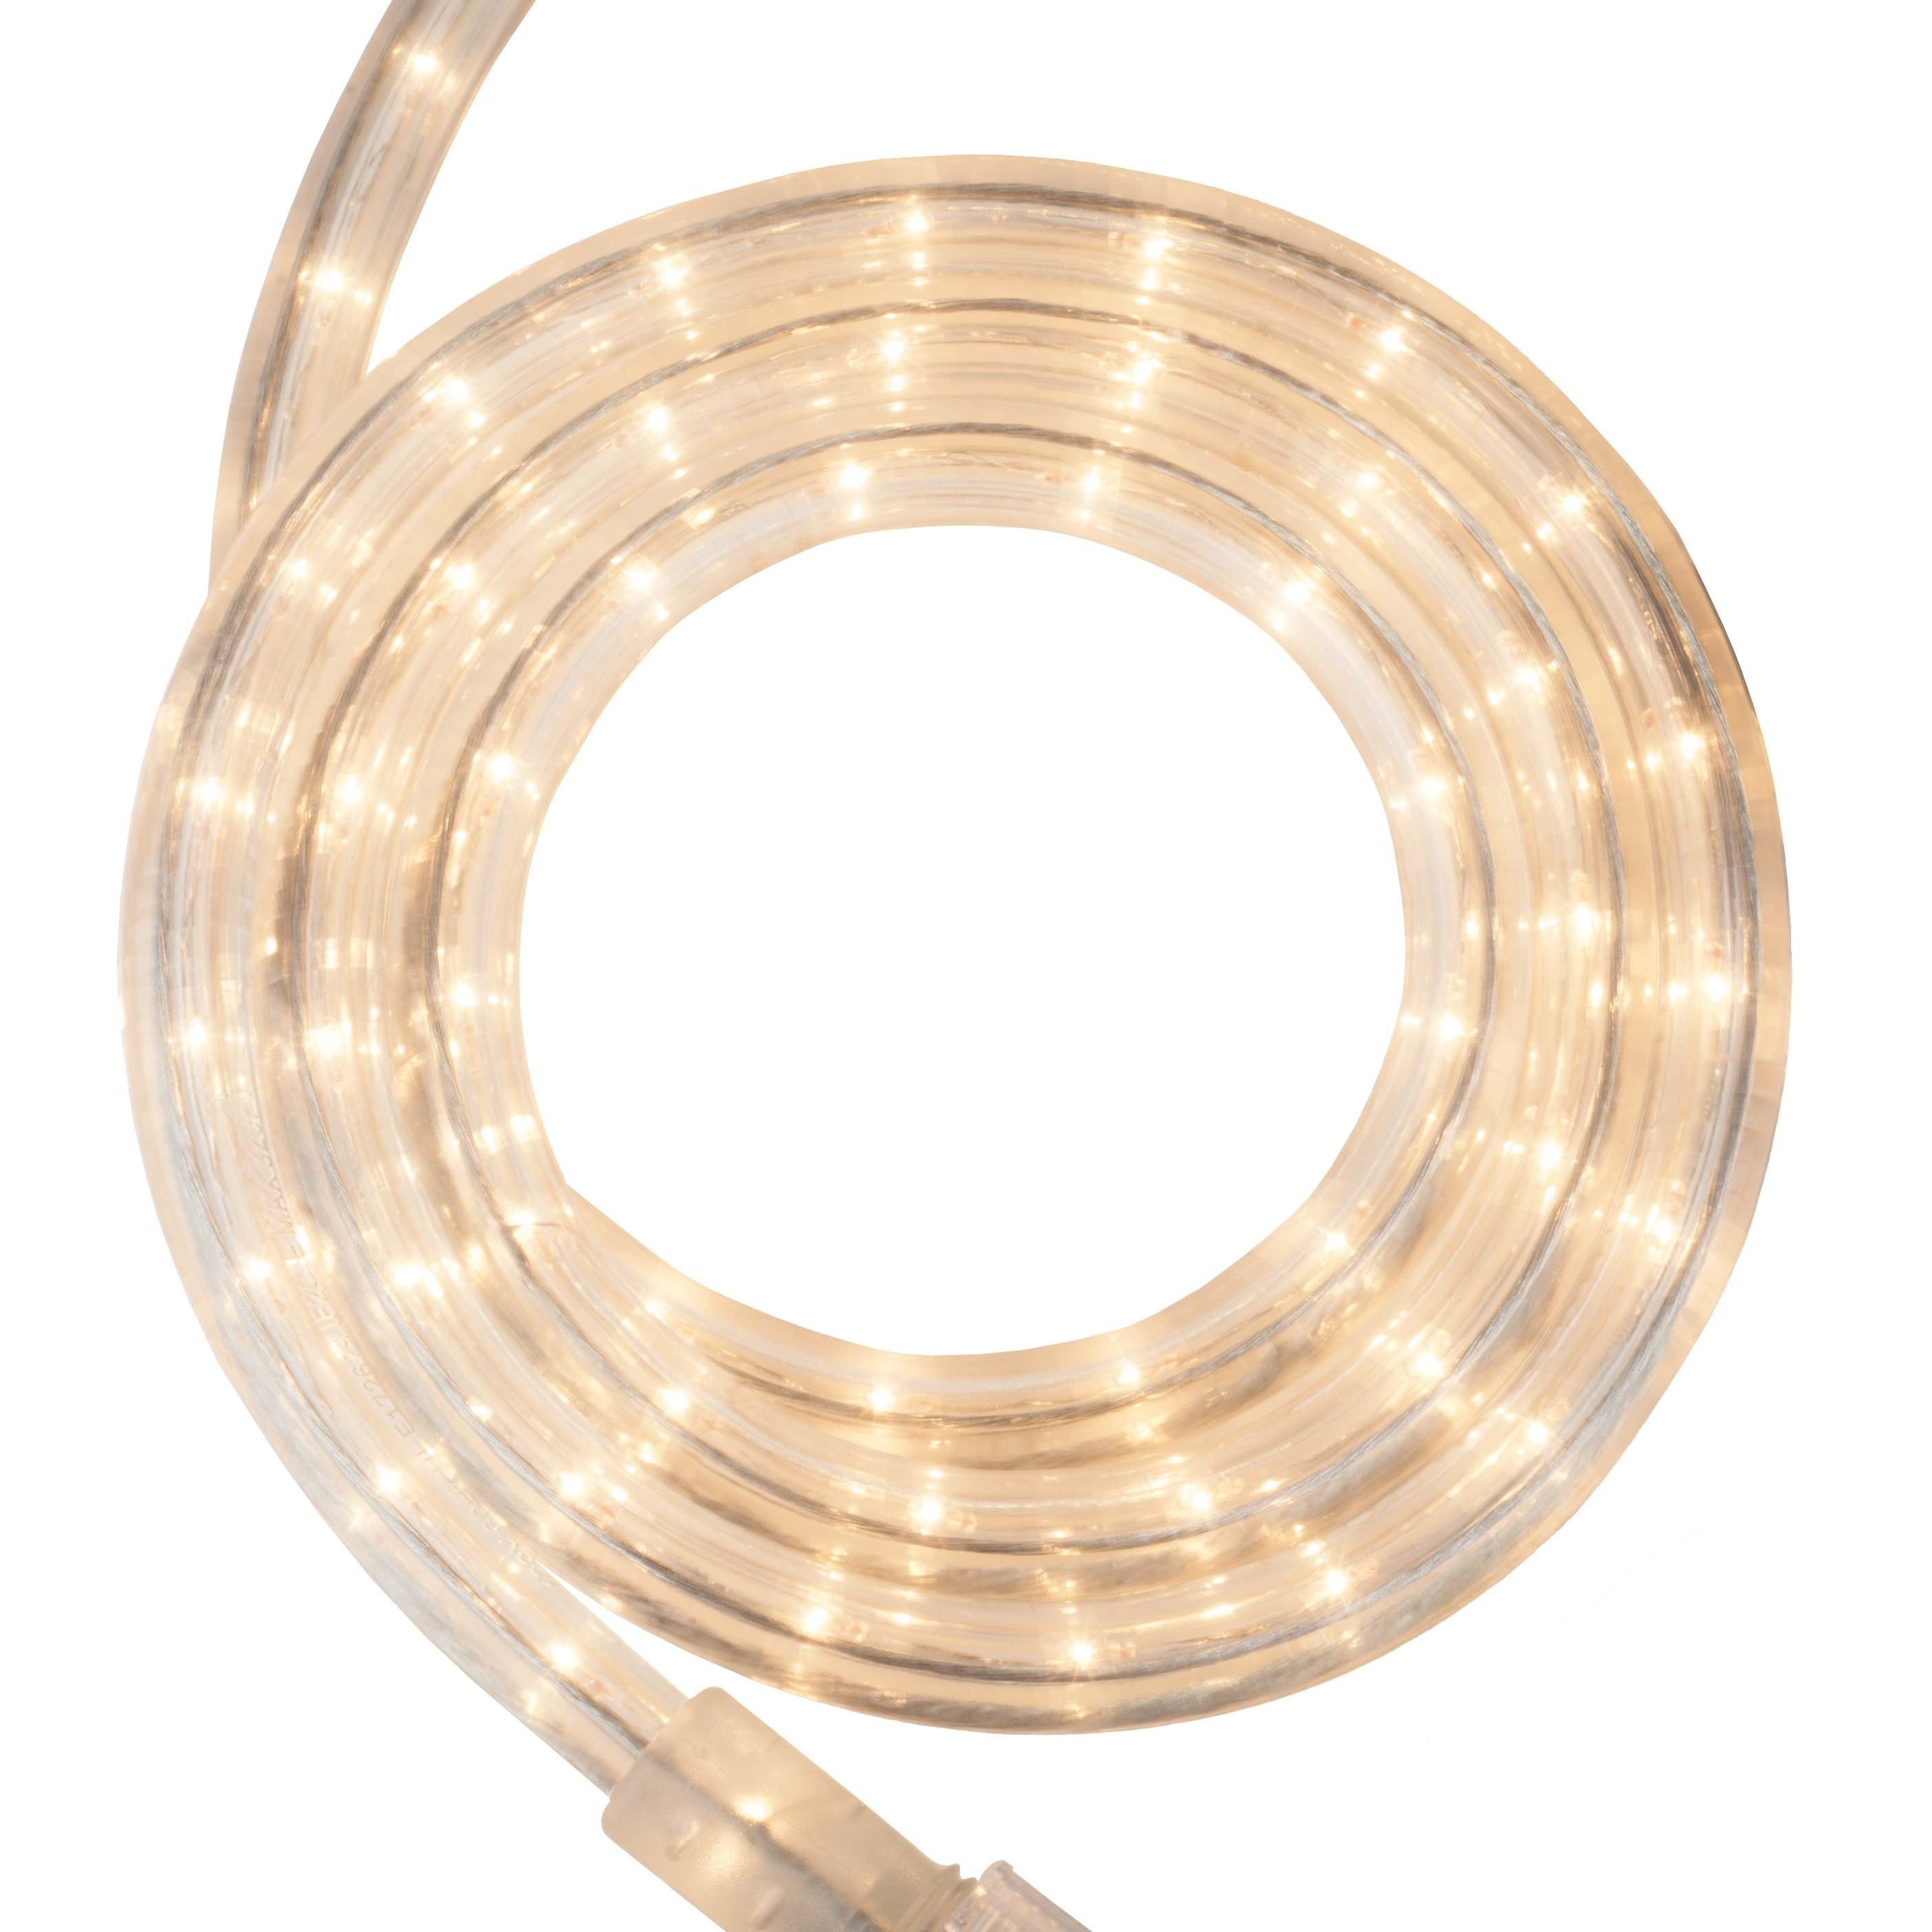 Rope Lights Rope Lighting 30 39 Clear Rope Light 120 Volt